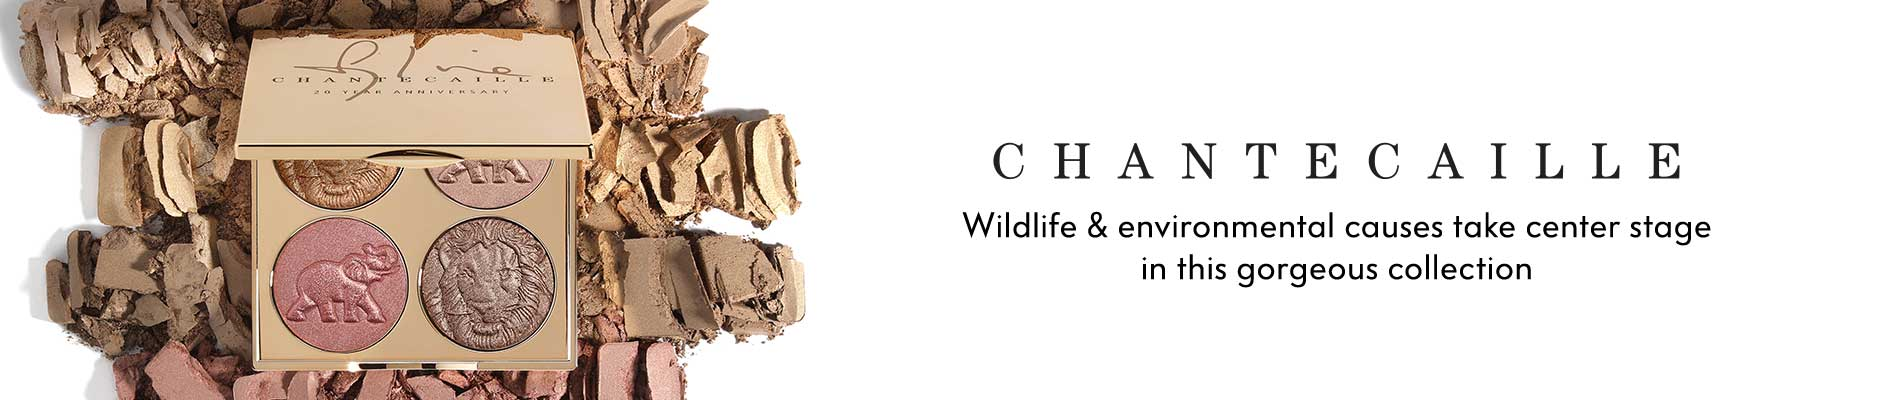 Happy Birthday Chantecaille! Wildlife & environmental causes take center stage in this gorgeous collection